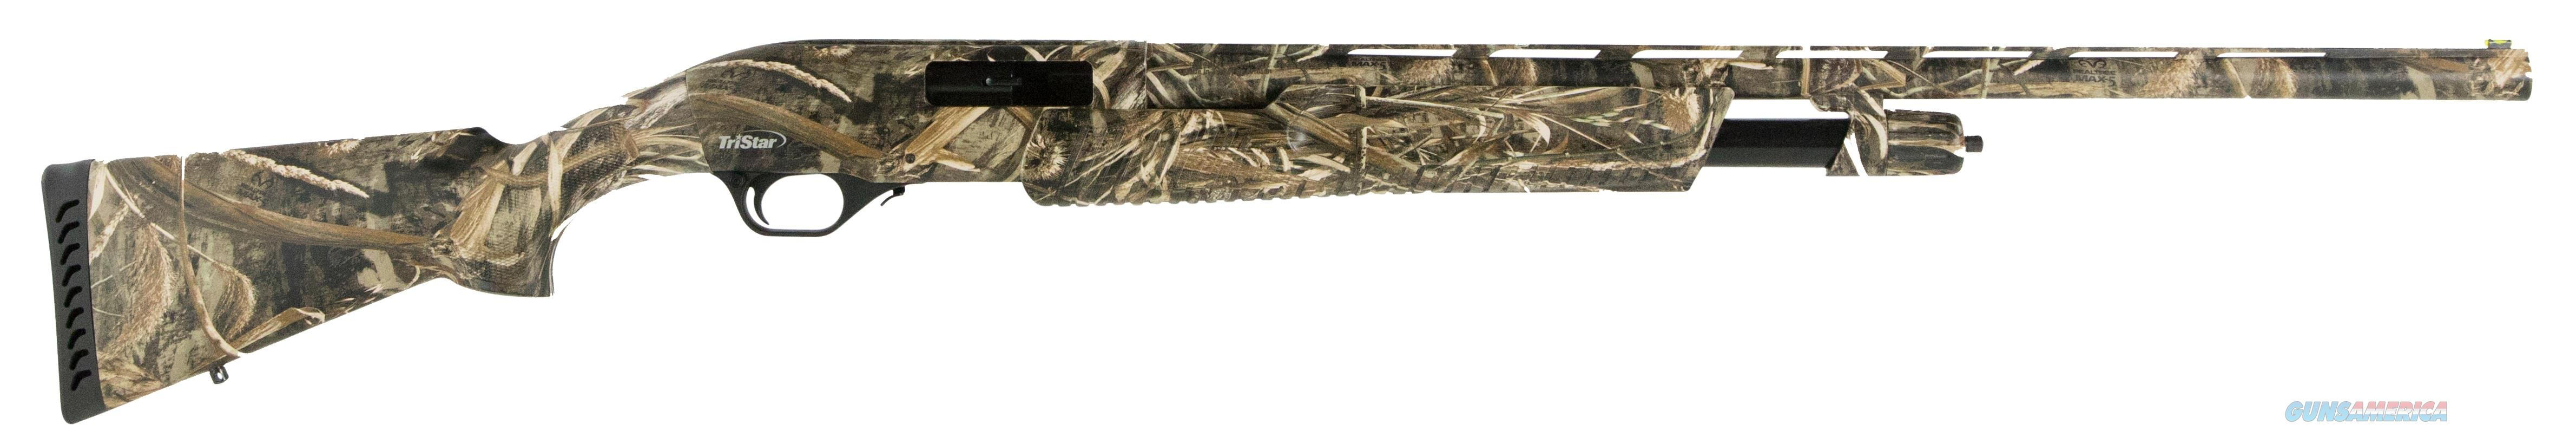 "TriStar Arms Cobra II Youth 20 GA Pump 24"" Realtree Max 5 23138   Guns > Shotguns > Tristar Shotguns"